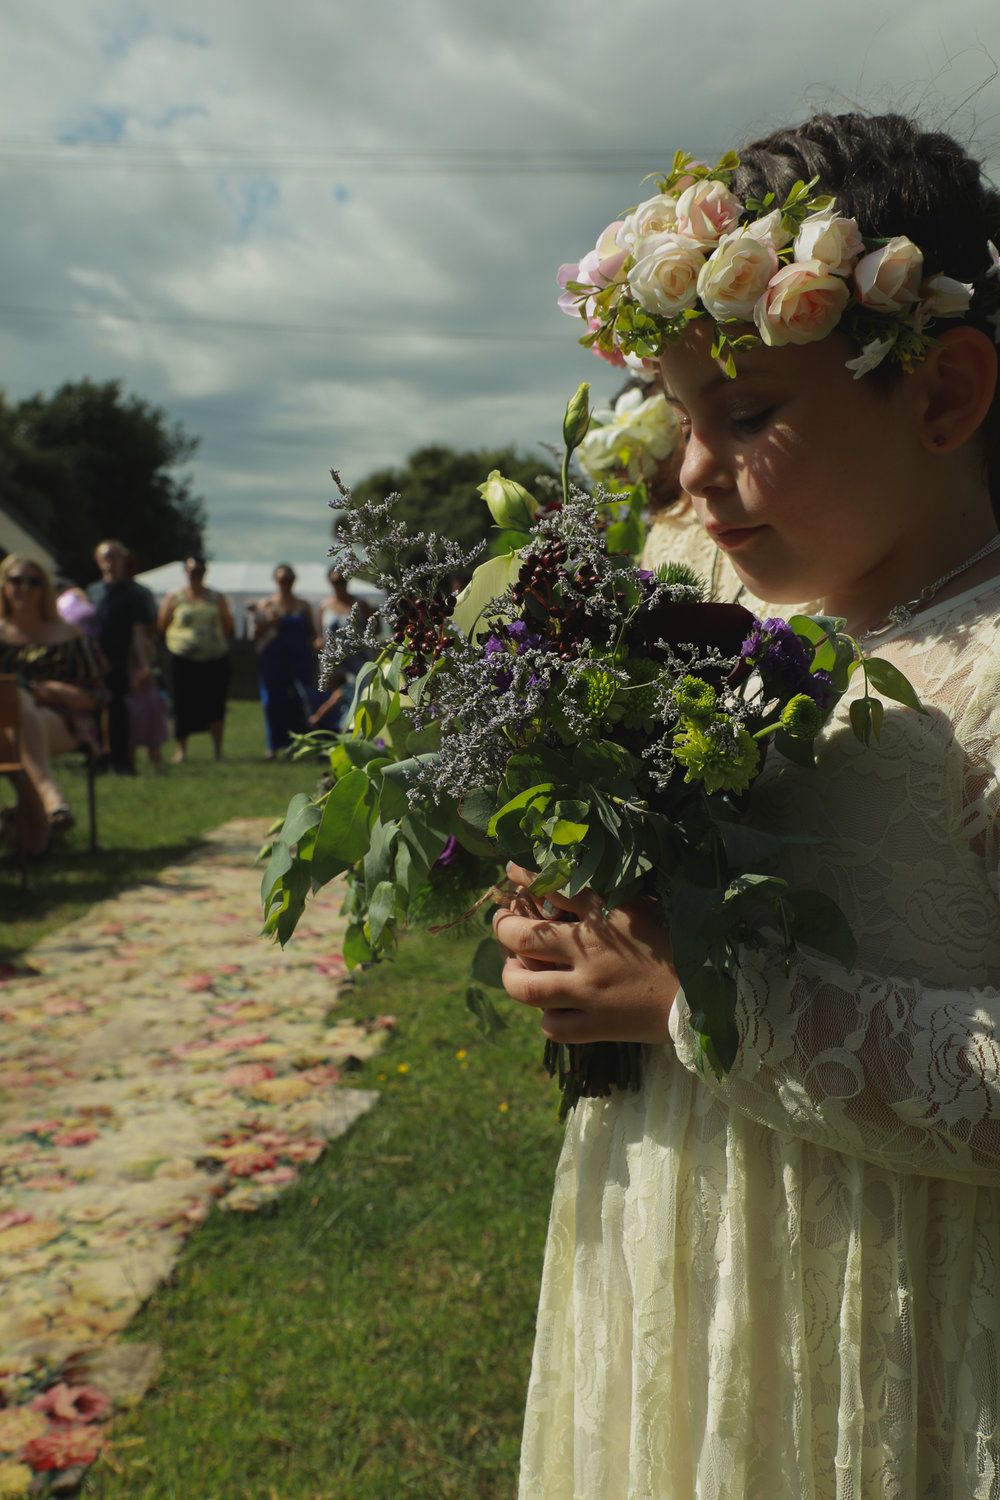 wedding-photography-flower-girl-at-ceremony.jpg